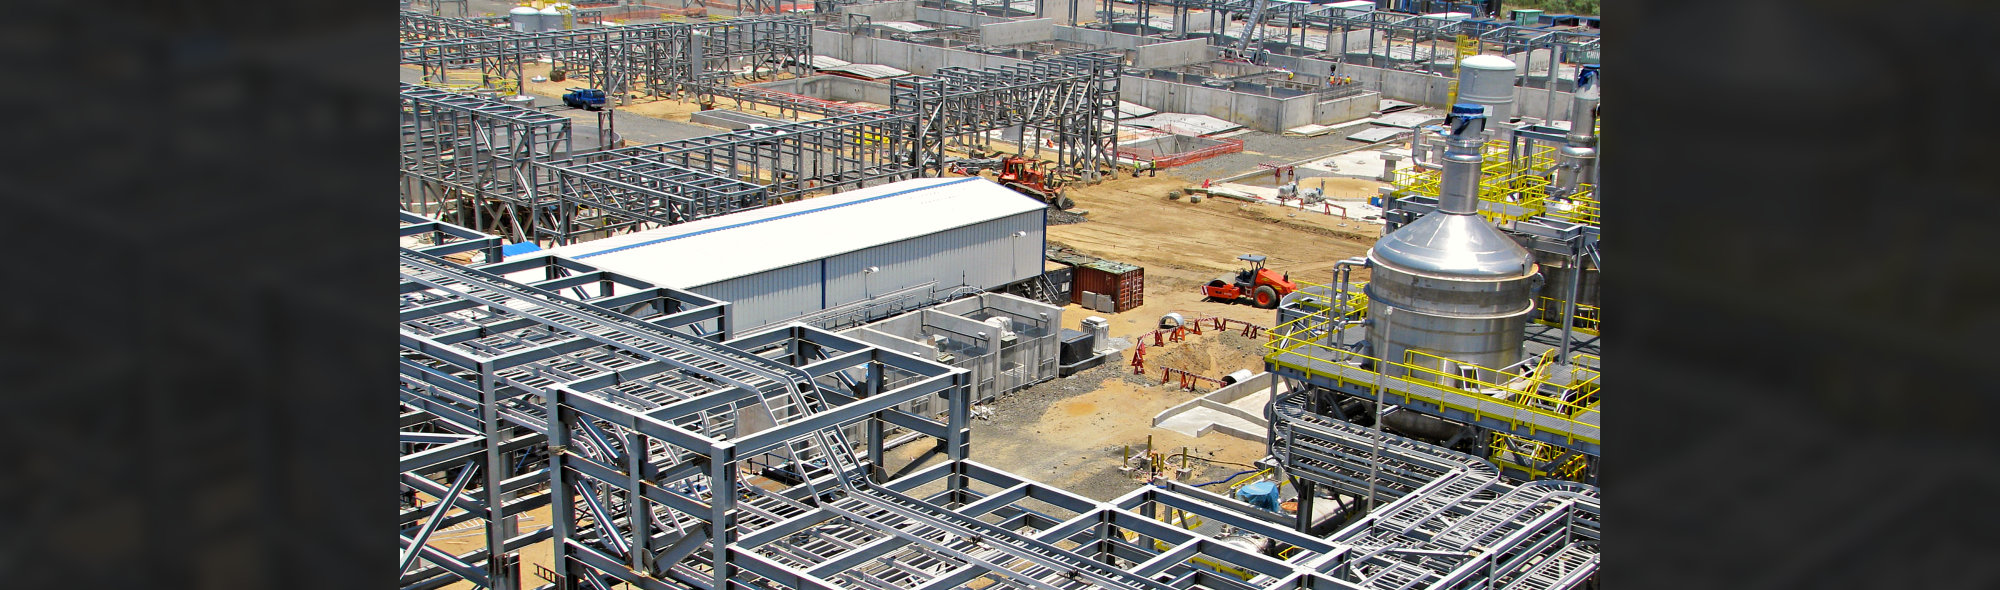 industrial construction of structural steel